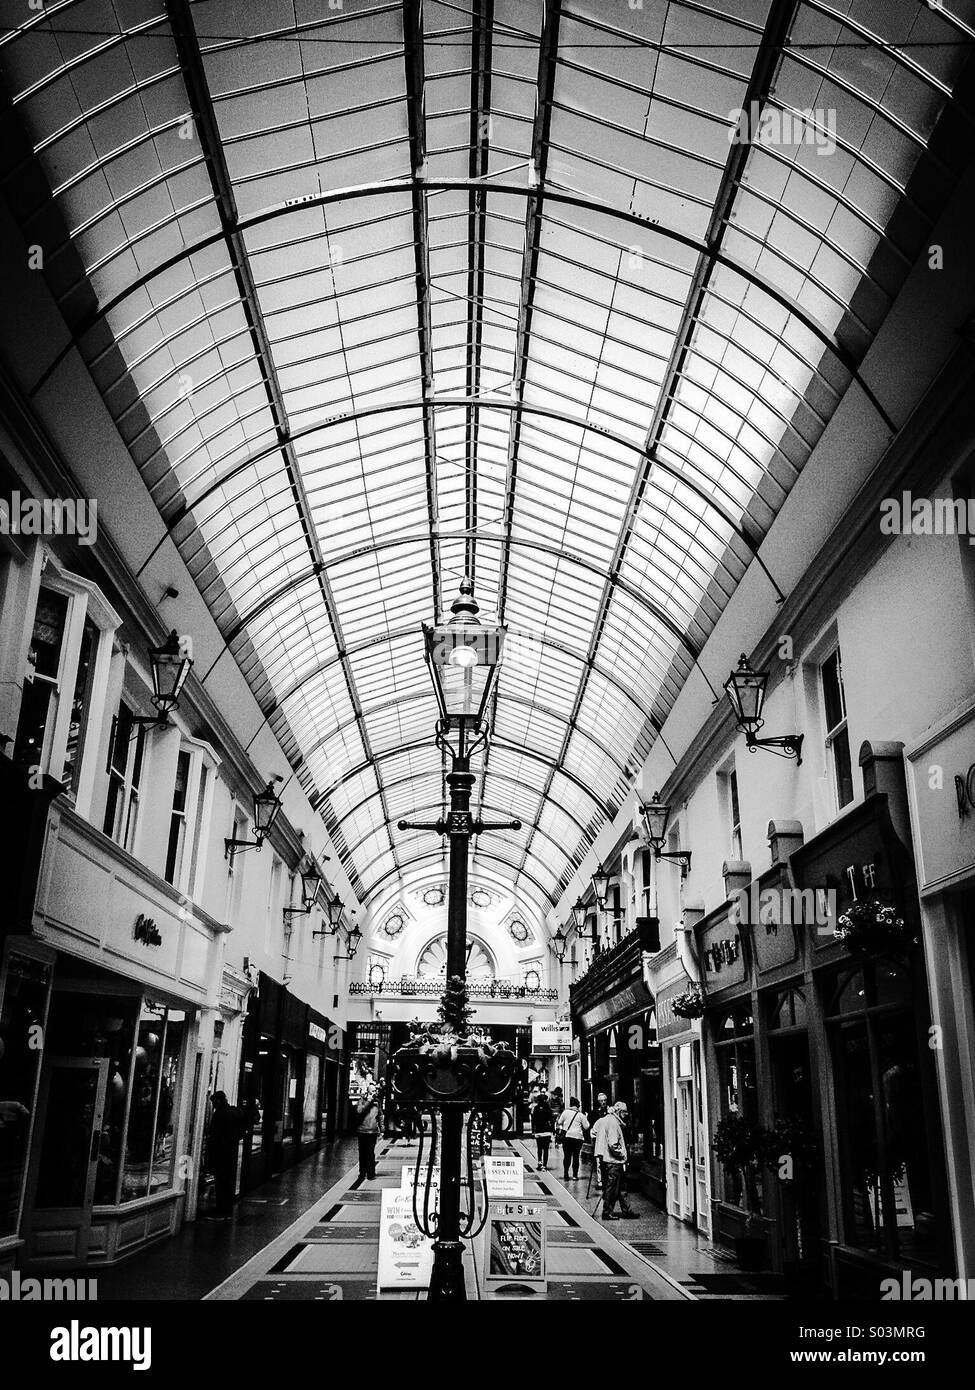 An internal view in mono, of Westbourne Arcade, Bournemouth, showing the covered symmetrical facades of the Grade - Stock Image